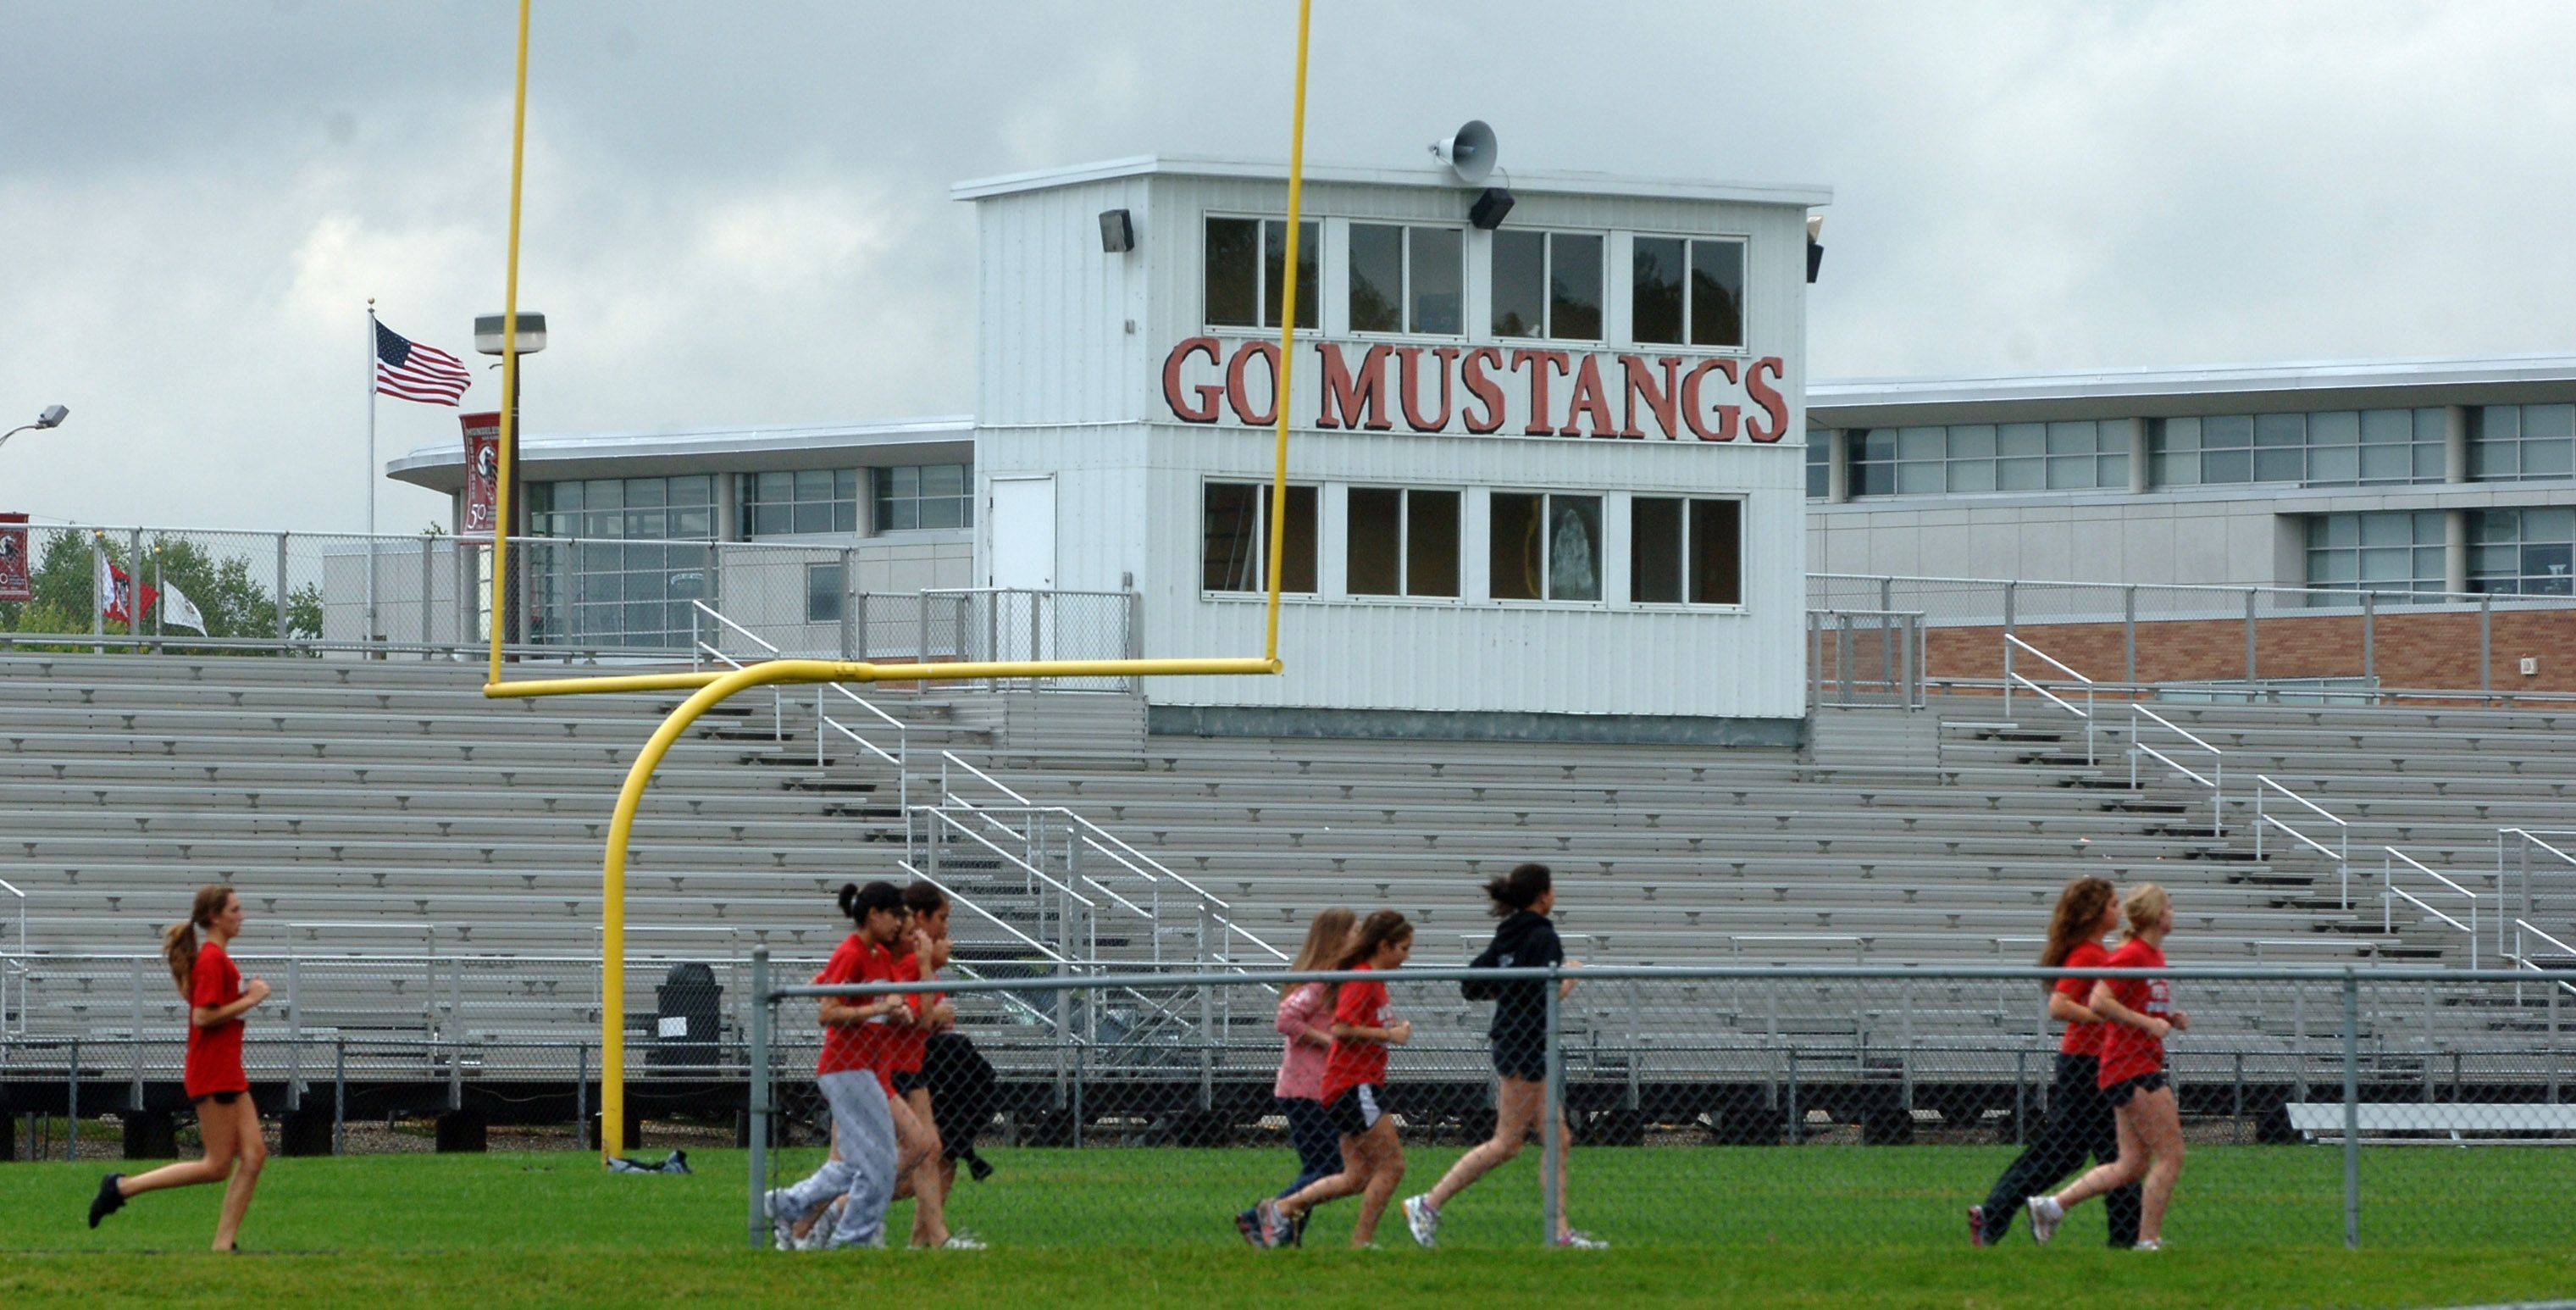 The Mundelein High School board broke state law by traveling to a downstate college campus to view the artificial turf field there, the attorney general's office has found.